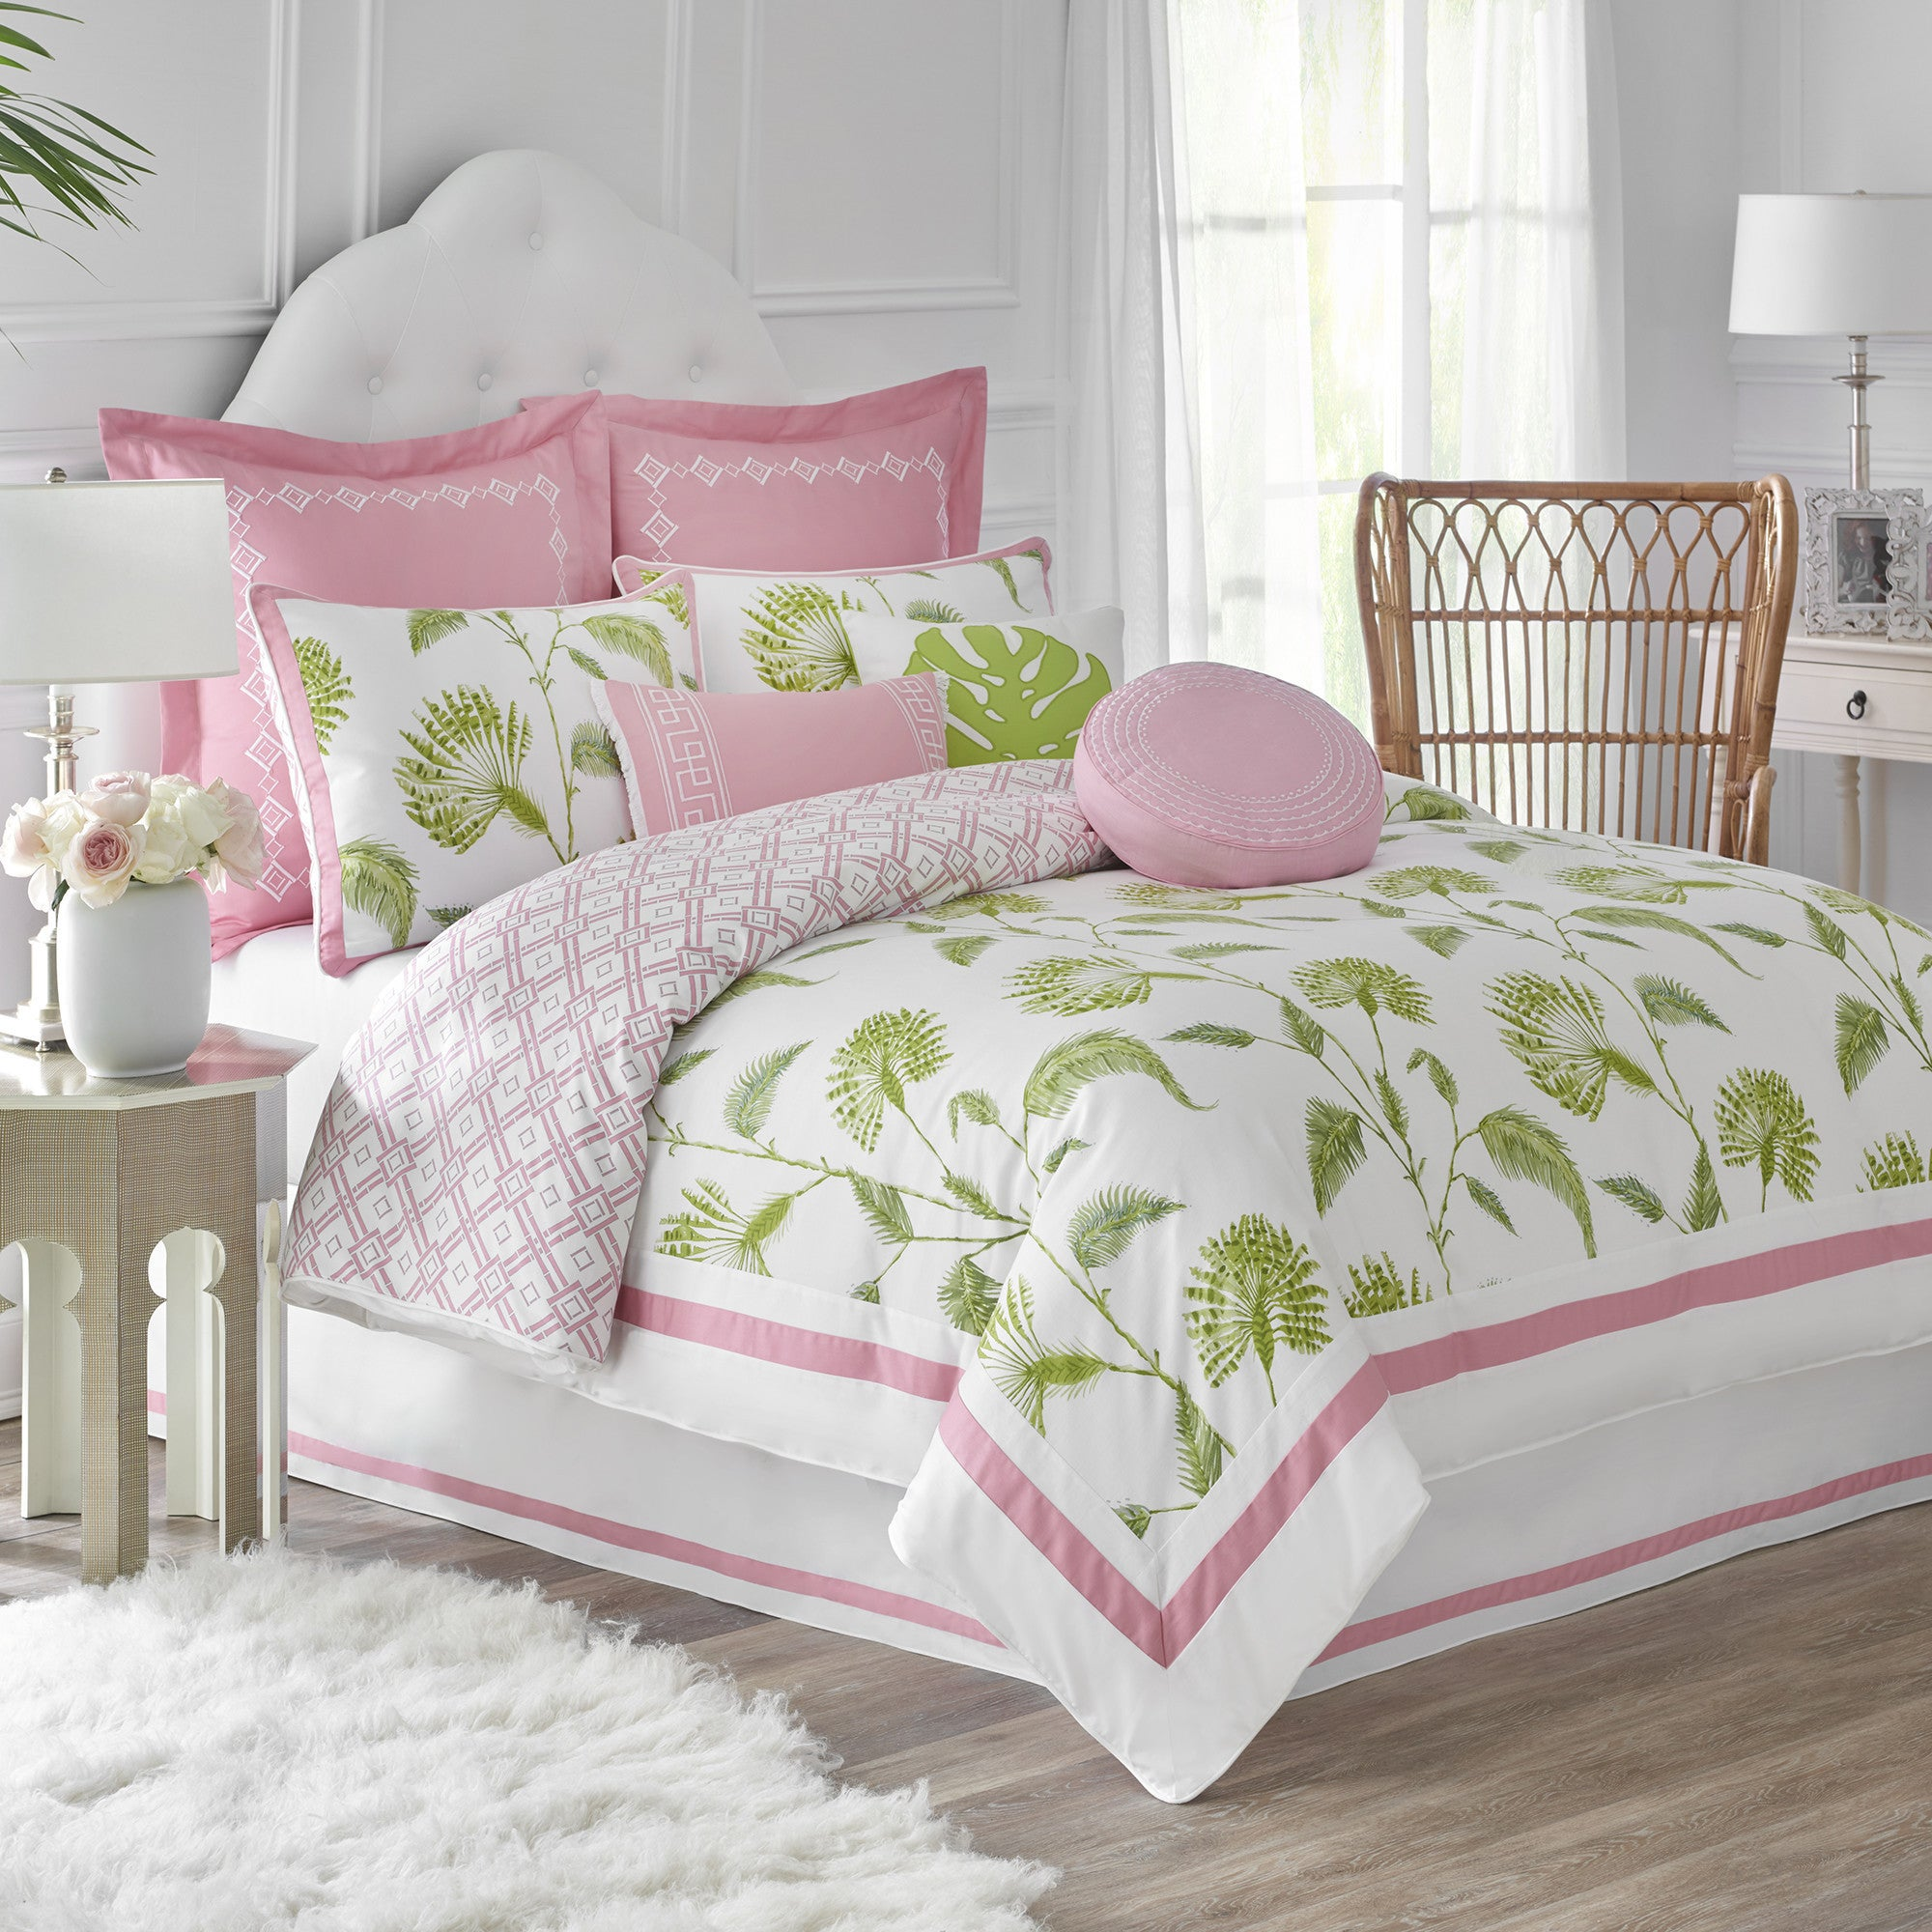 Dena Home Palm Court Comforter Set